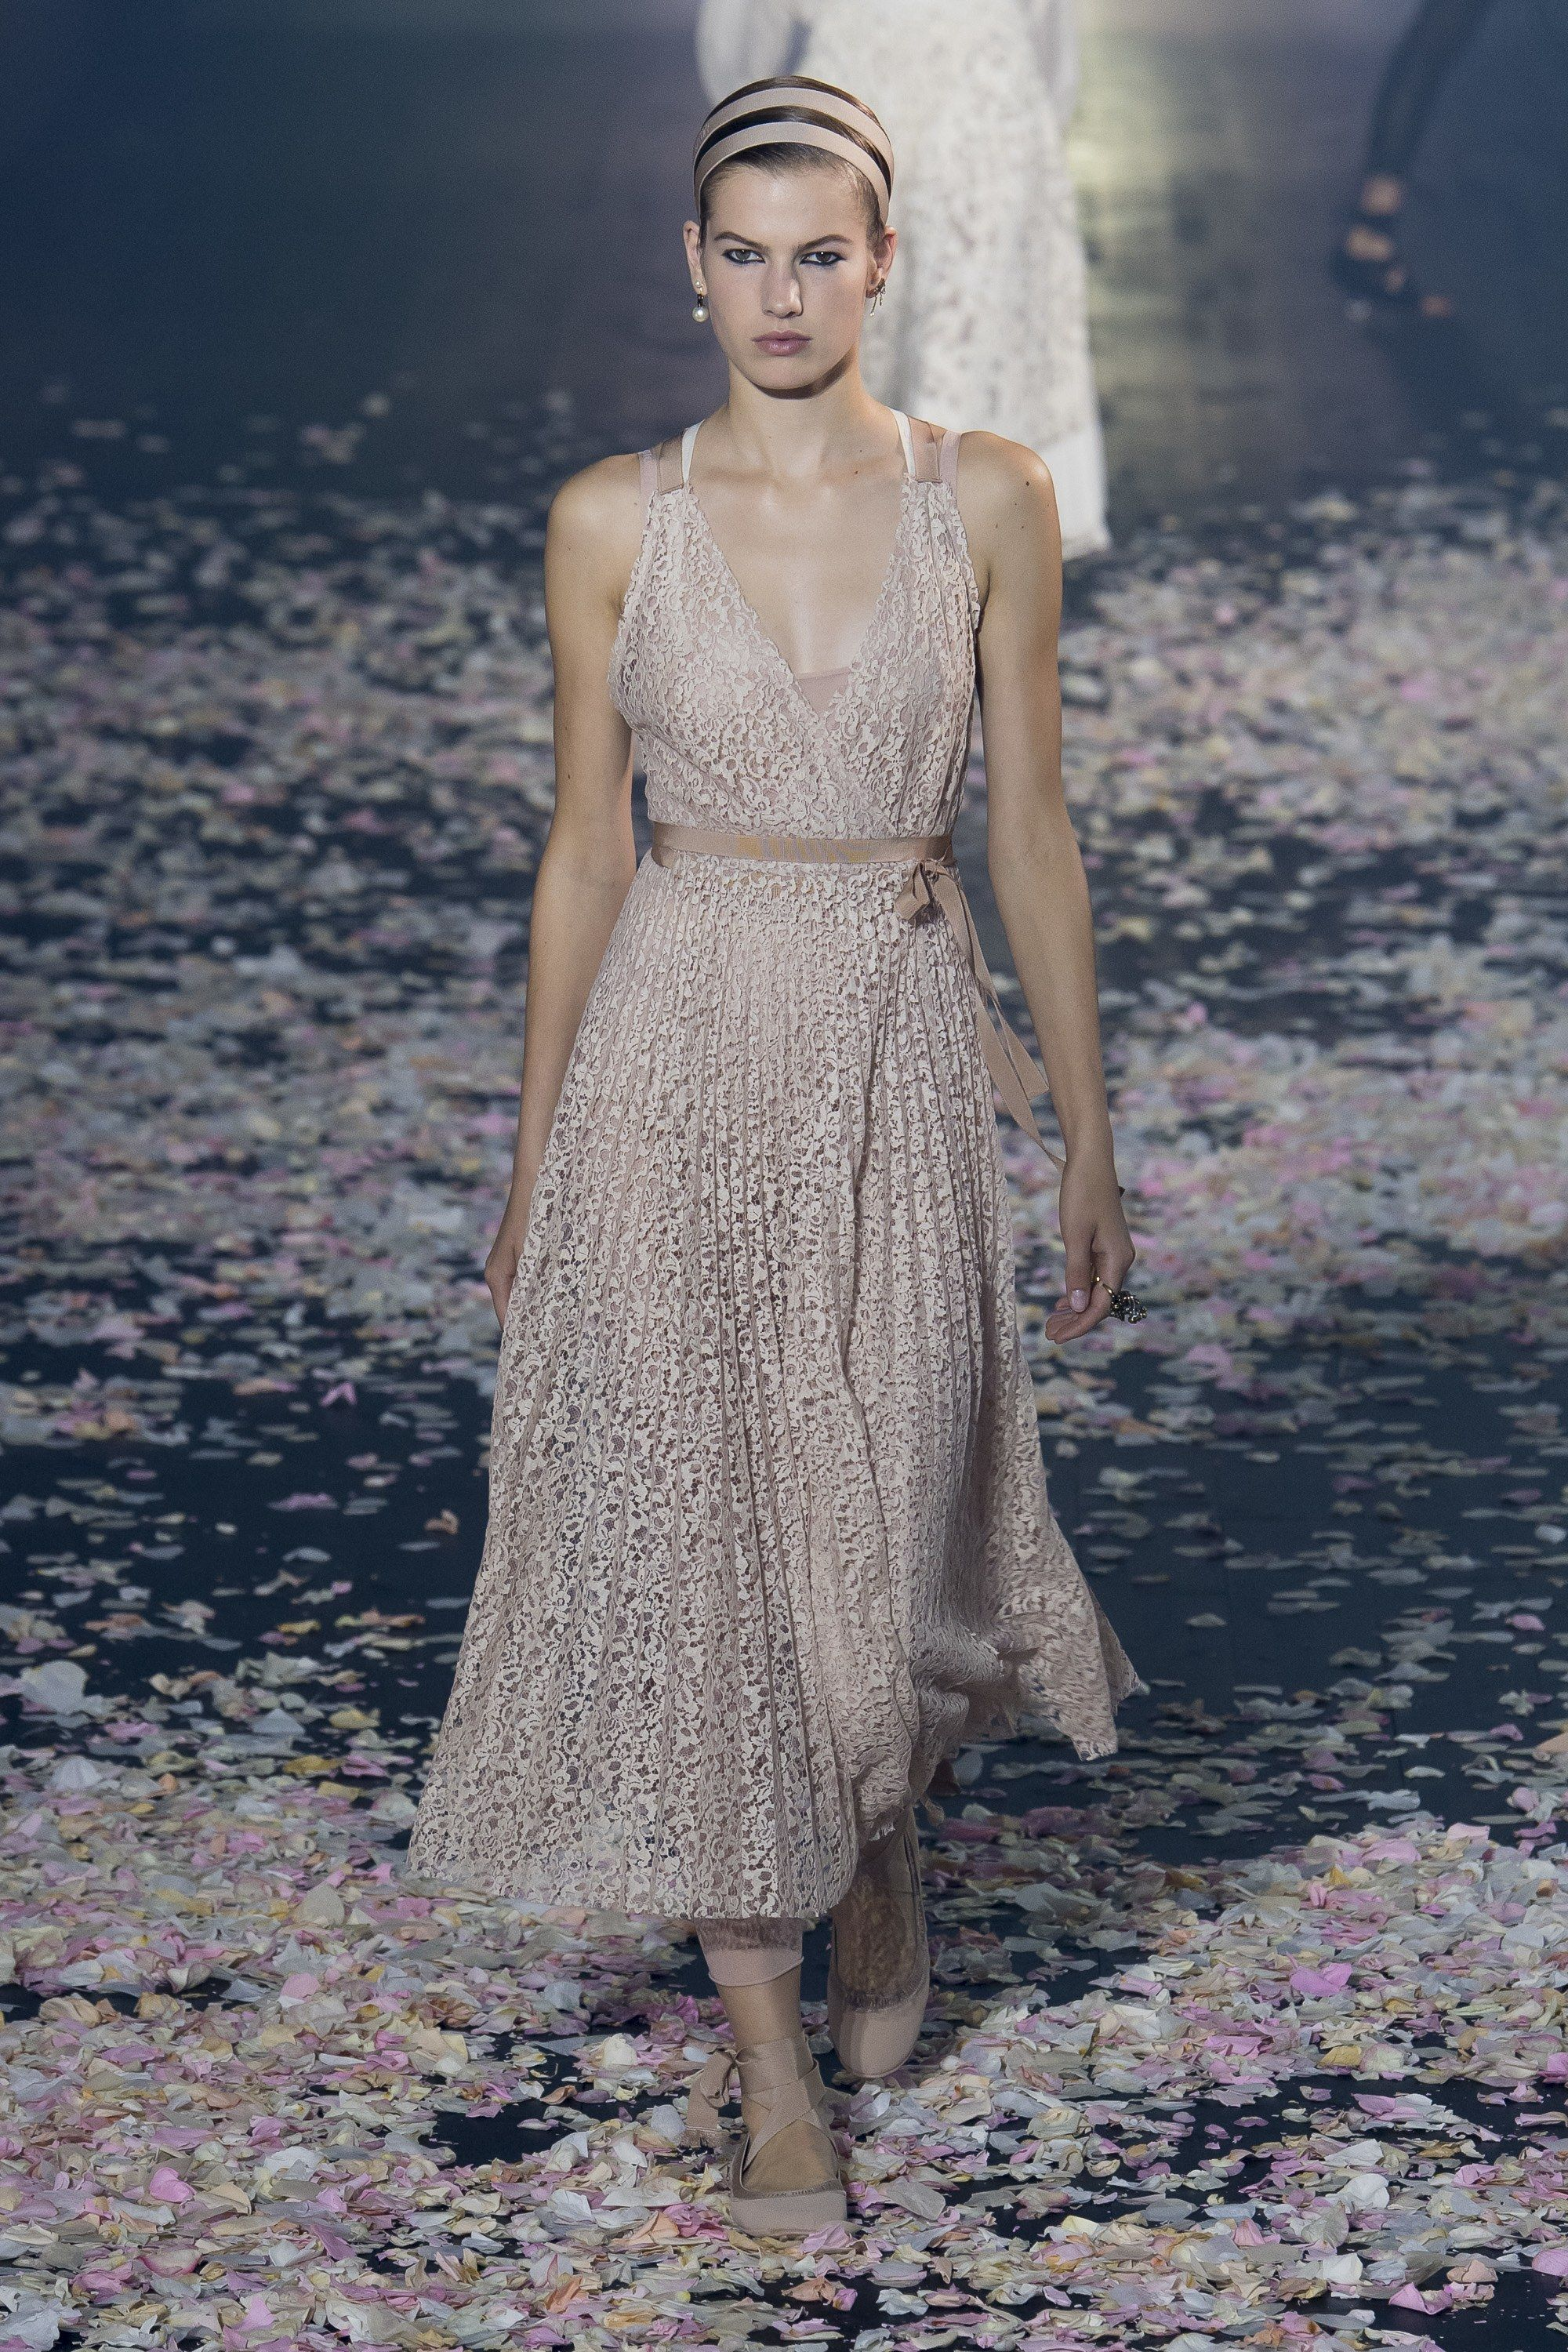 32dfc3f0ef Christian Dior Spring 2019 Ready-to-Wear Collection - Vogue